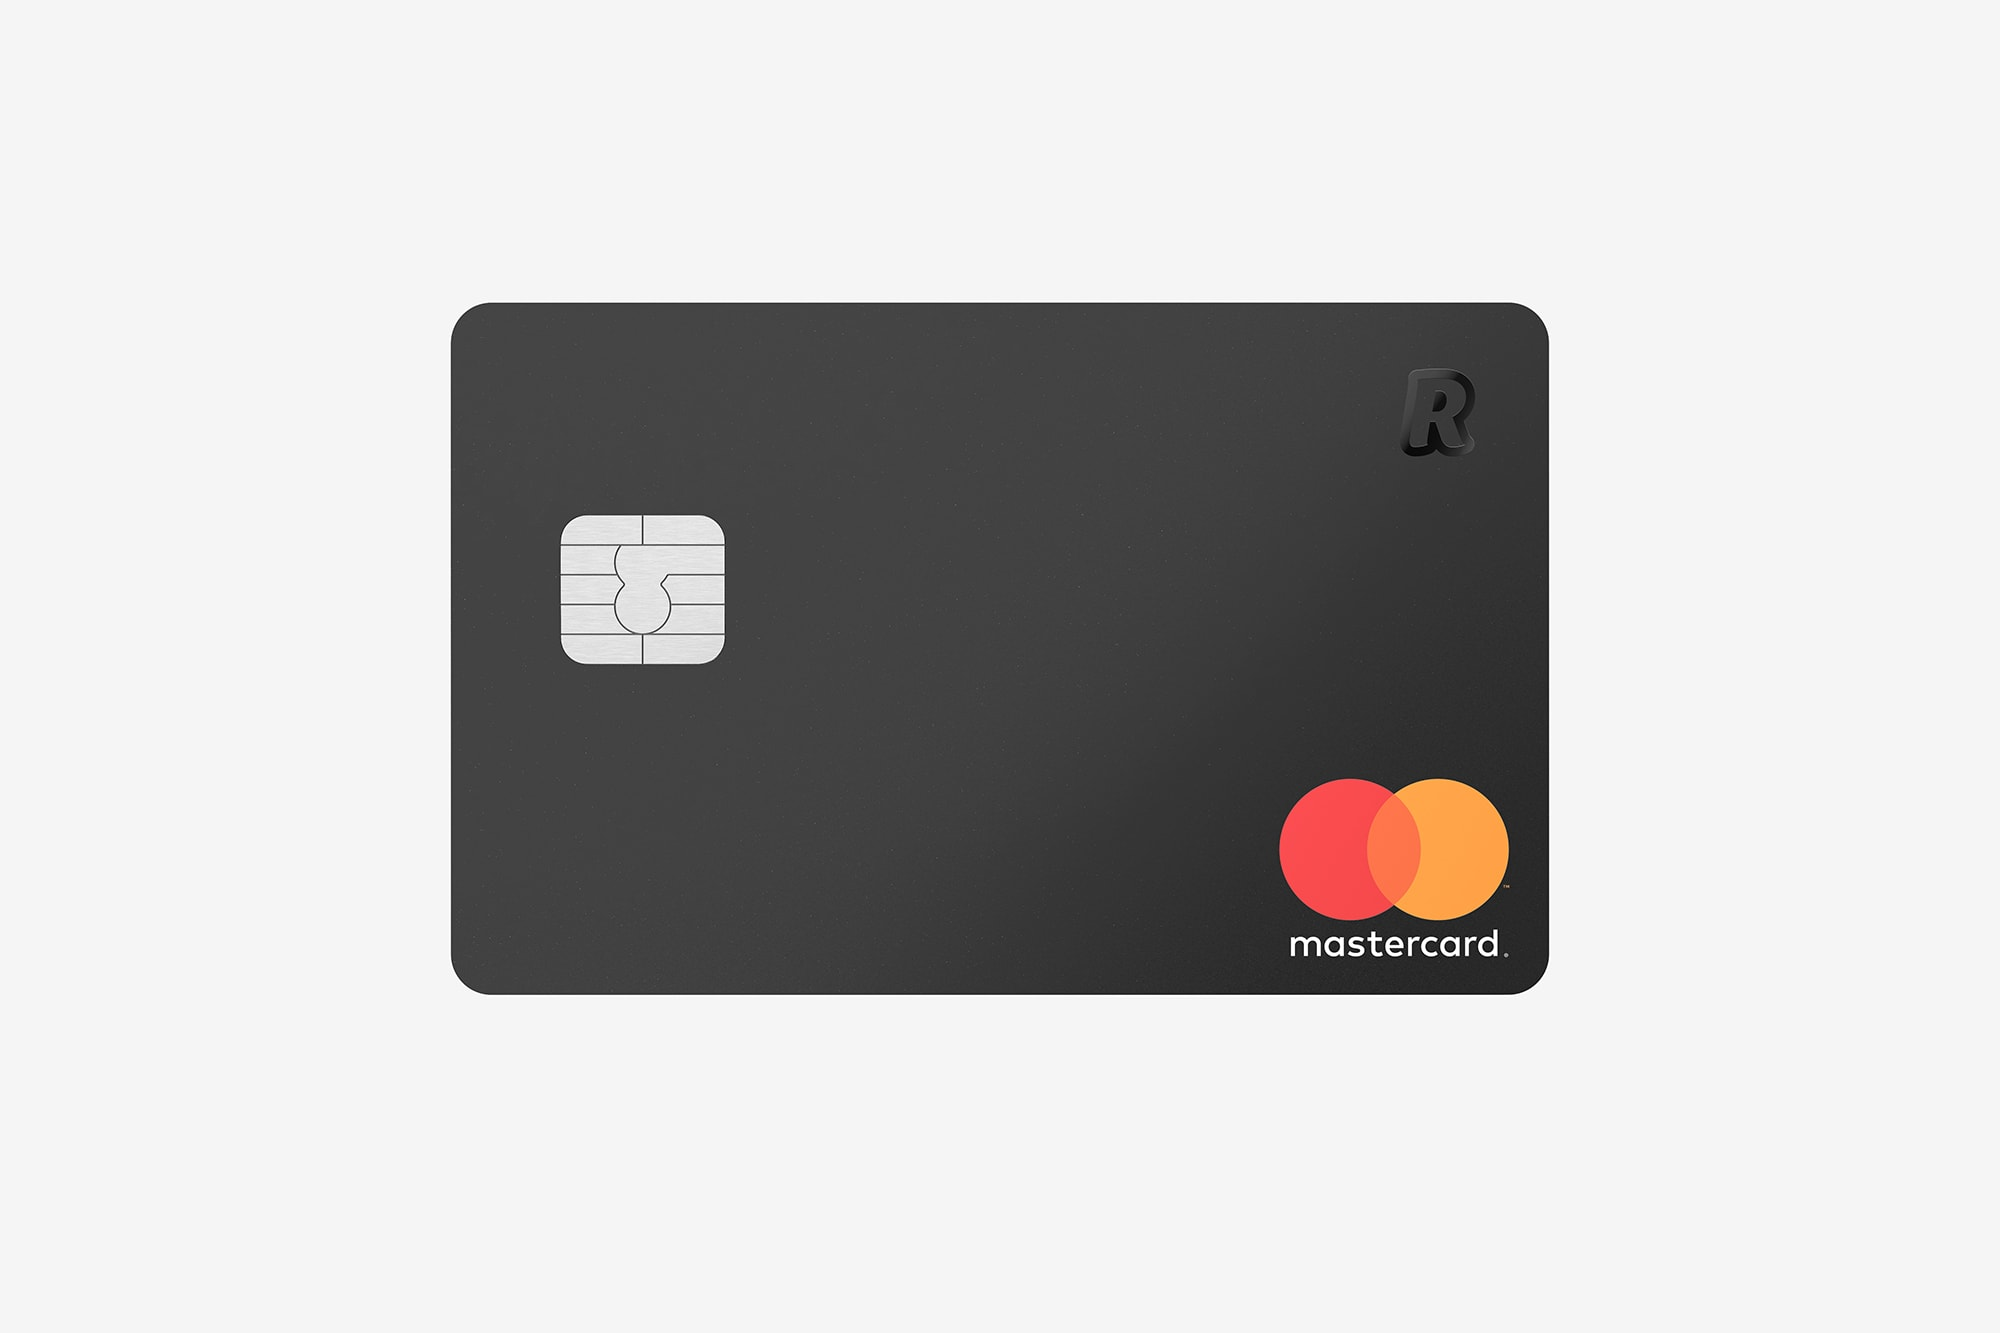 Front view of the Revolut Premium Bank Card showing a silver chip, a mastercard logo and Revolut logo, black.